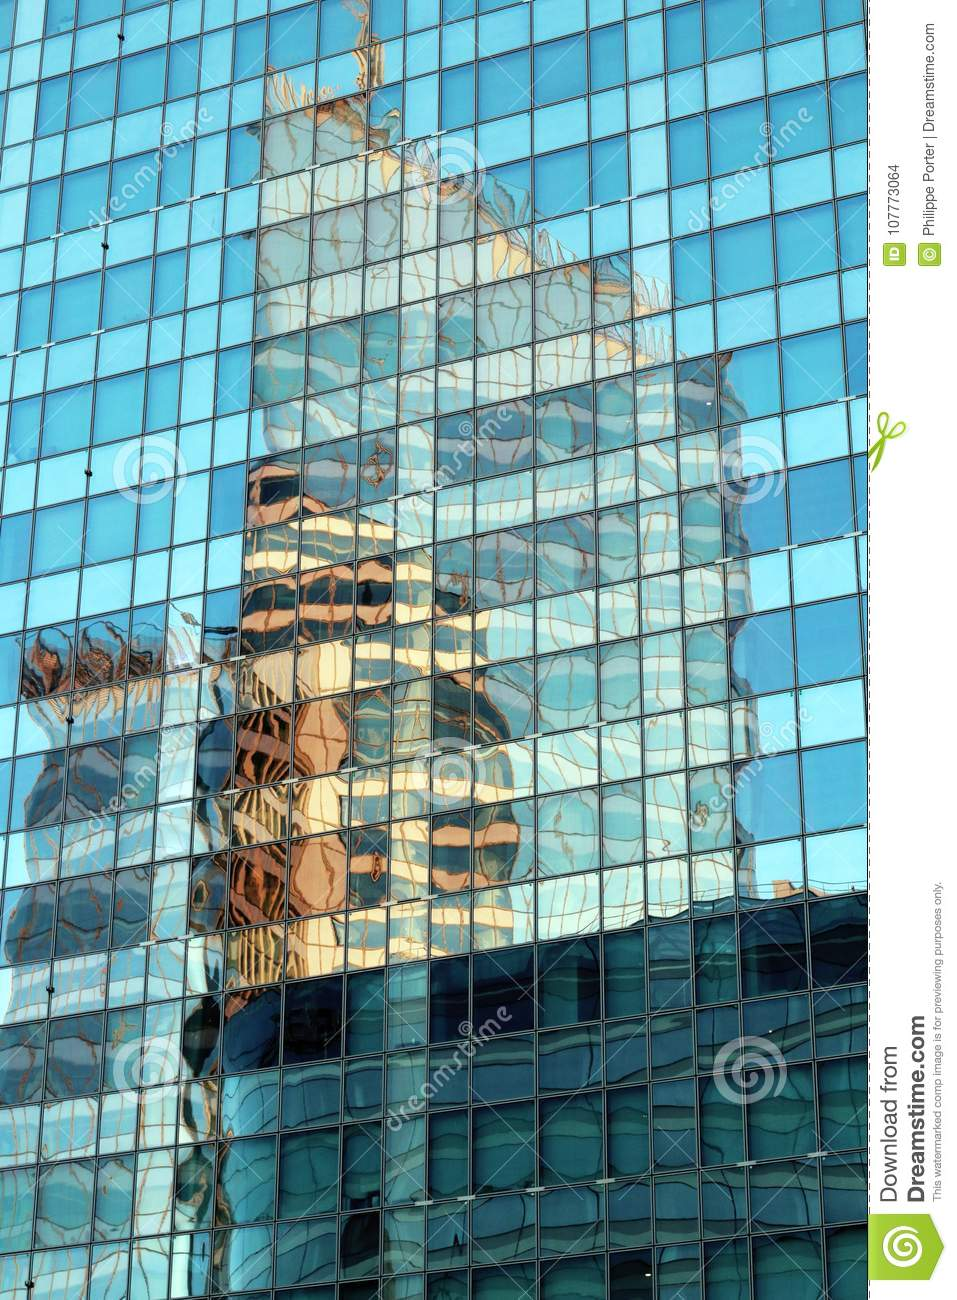 La defense glass facades abstract reflections in modern Offices building in Paris business district